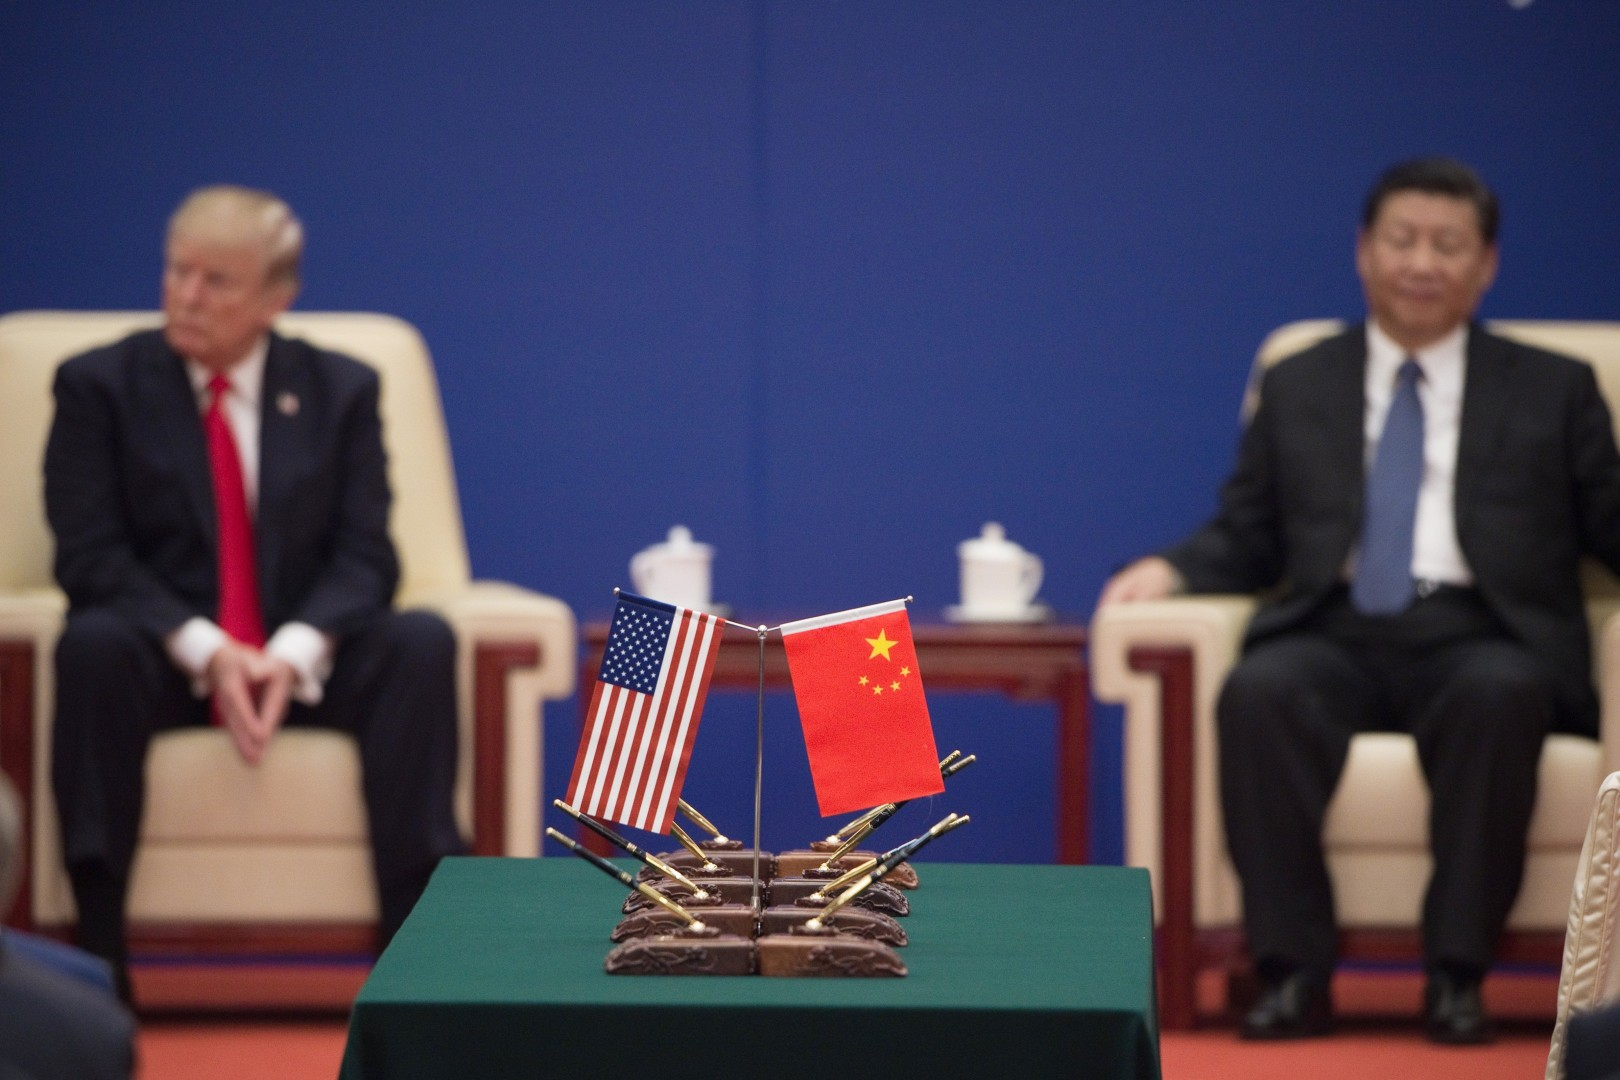 President of the United States Donald Trump and President of China, Xi Jinping attend a meeting of business leaders.